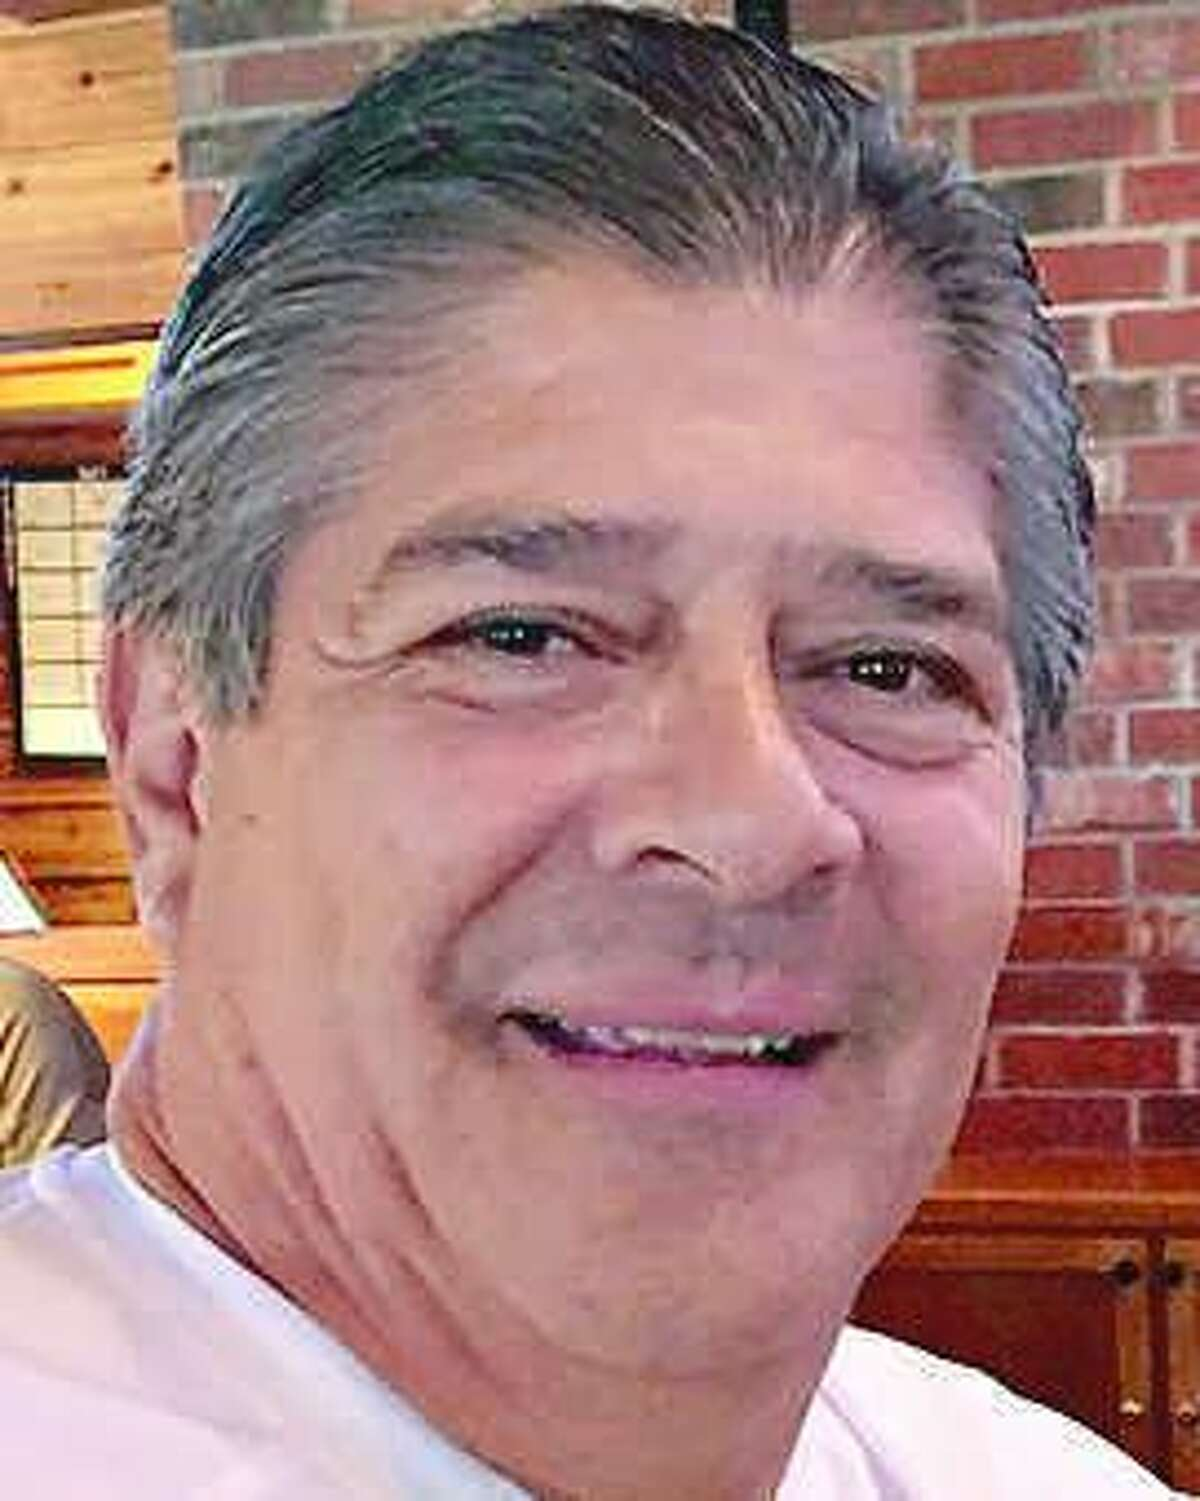 Richard Peña, 60, who died Dec. 2, played professional ball in Mexico.